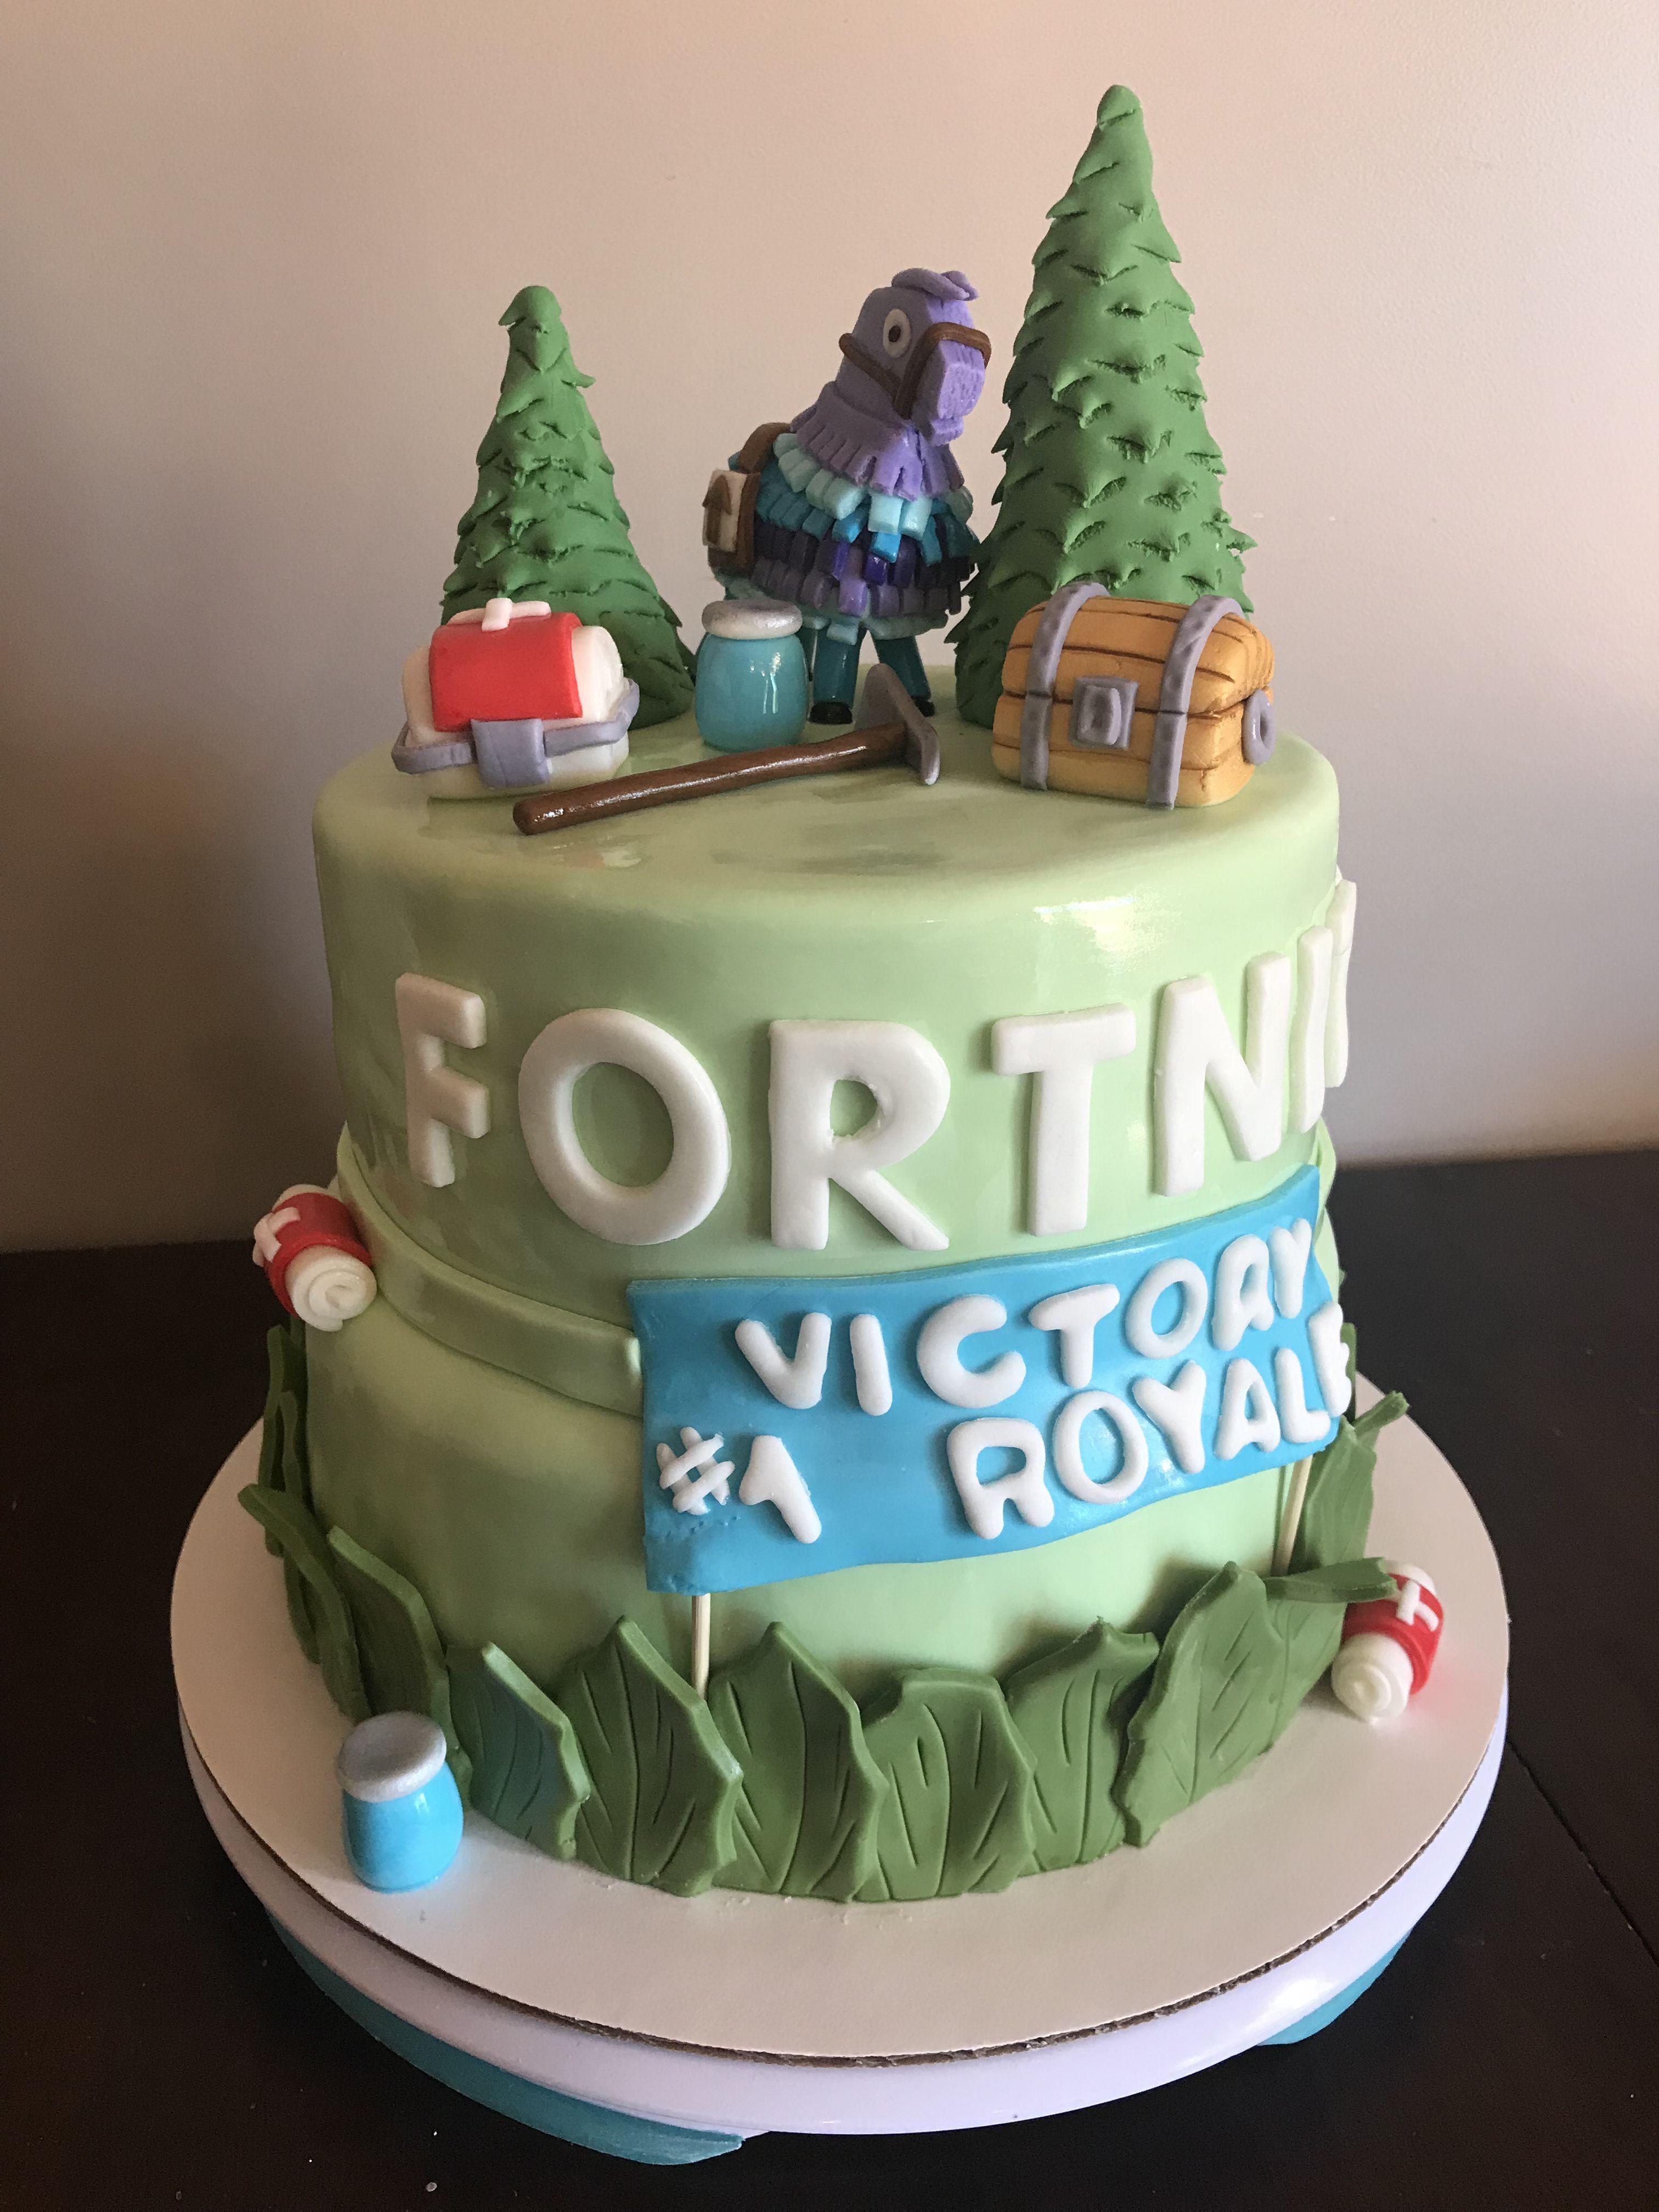 Fortnite Inspired Birthday Cake Perfect For Your Gamerany Age